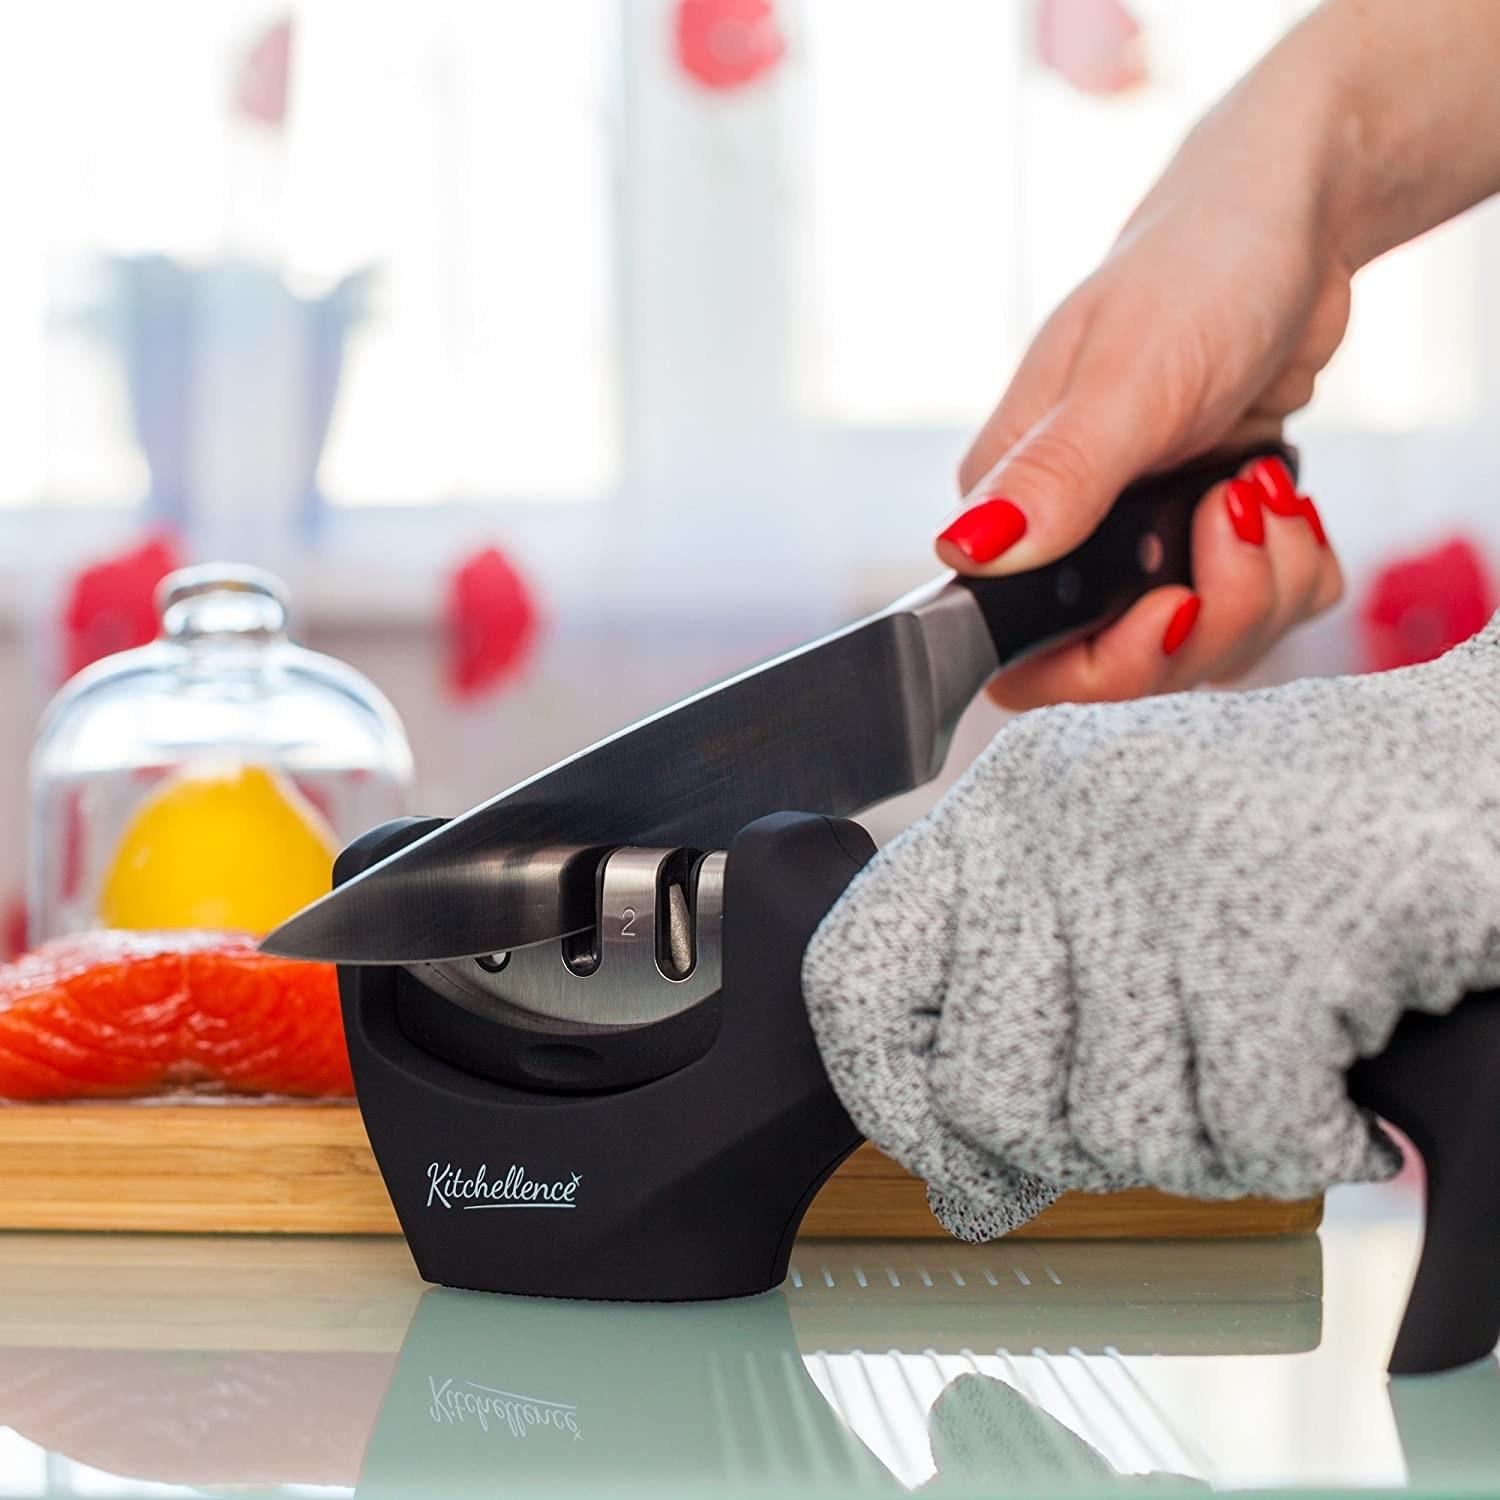 A knife being sharpened on a kitchen counter with a protective glove also being used